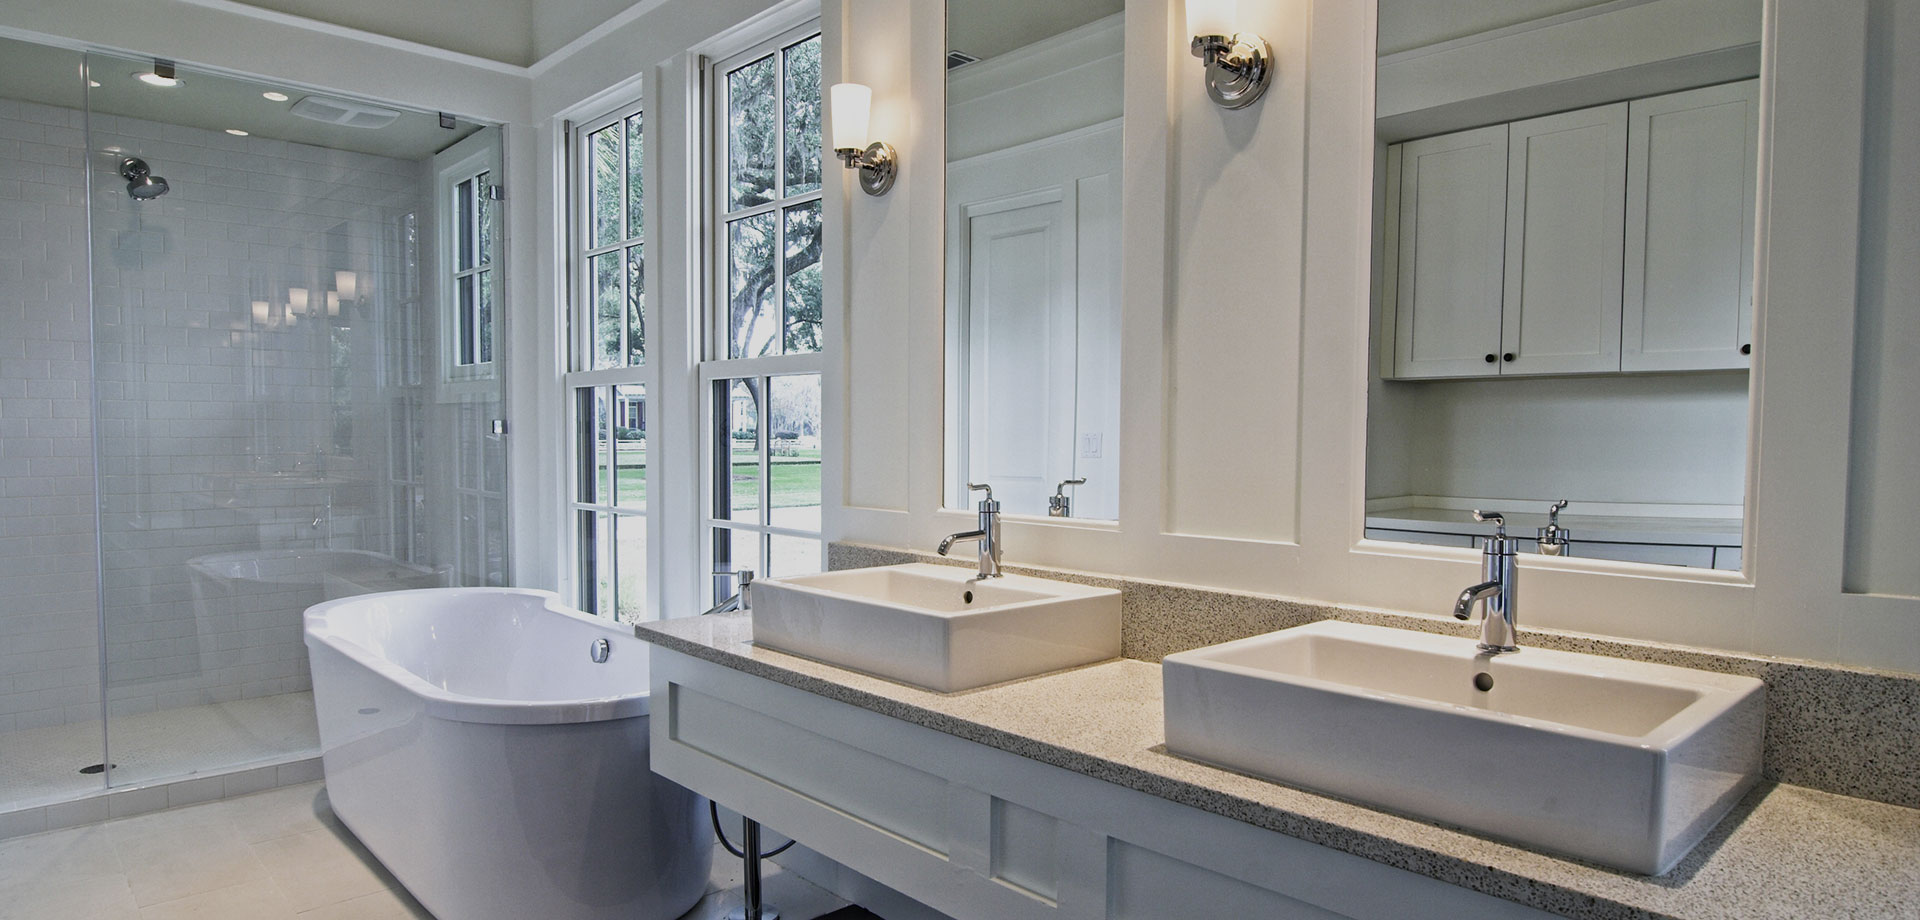 Give Your Bathroom a Face-Lift